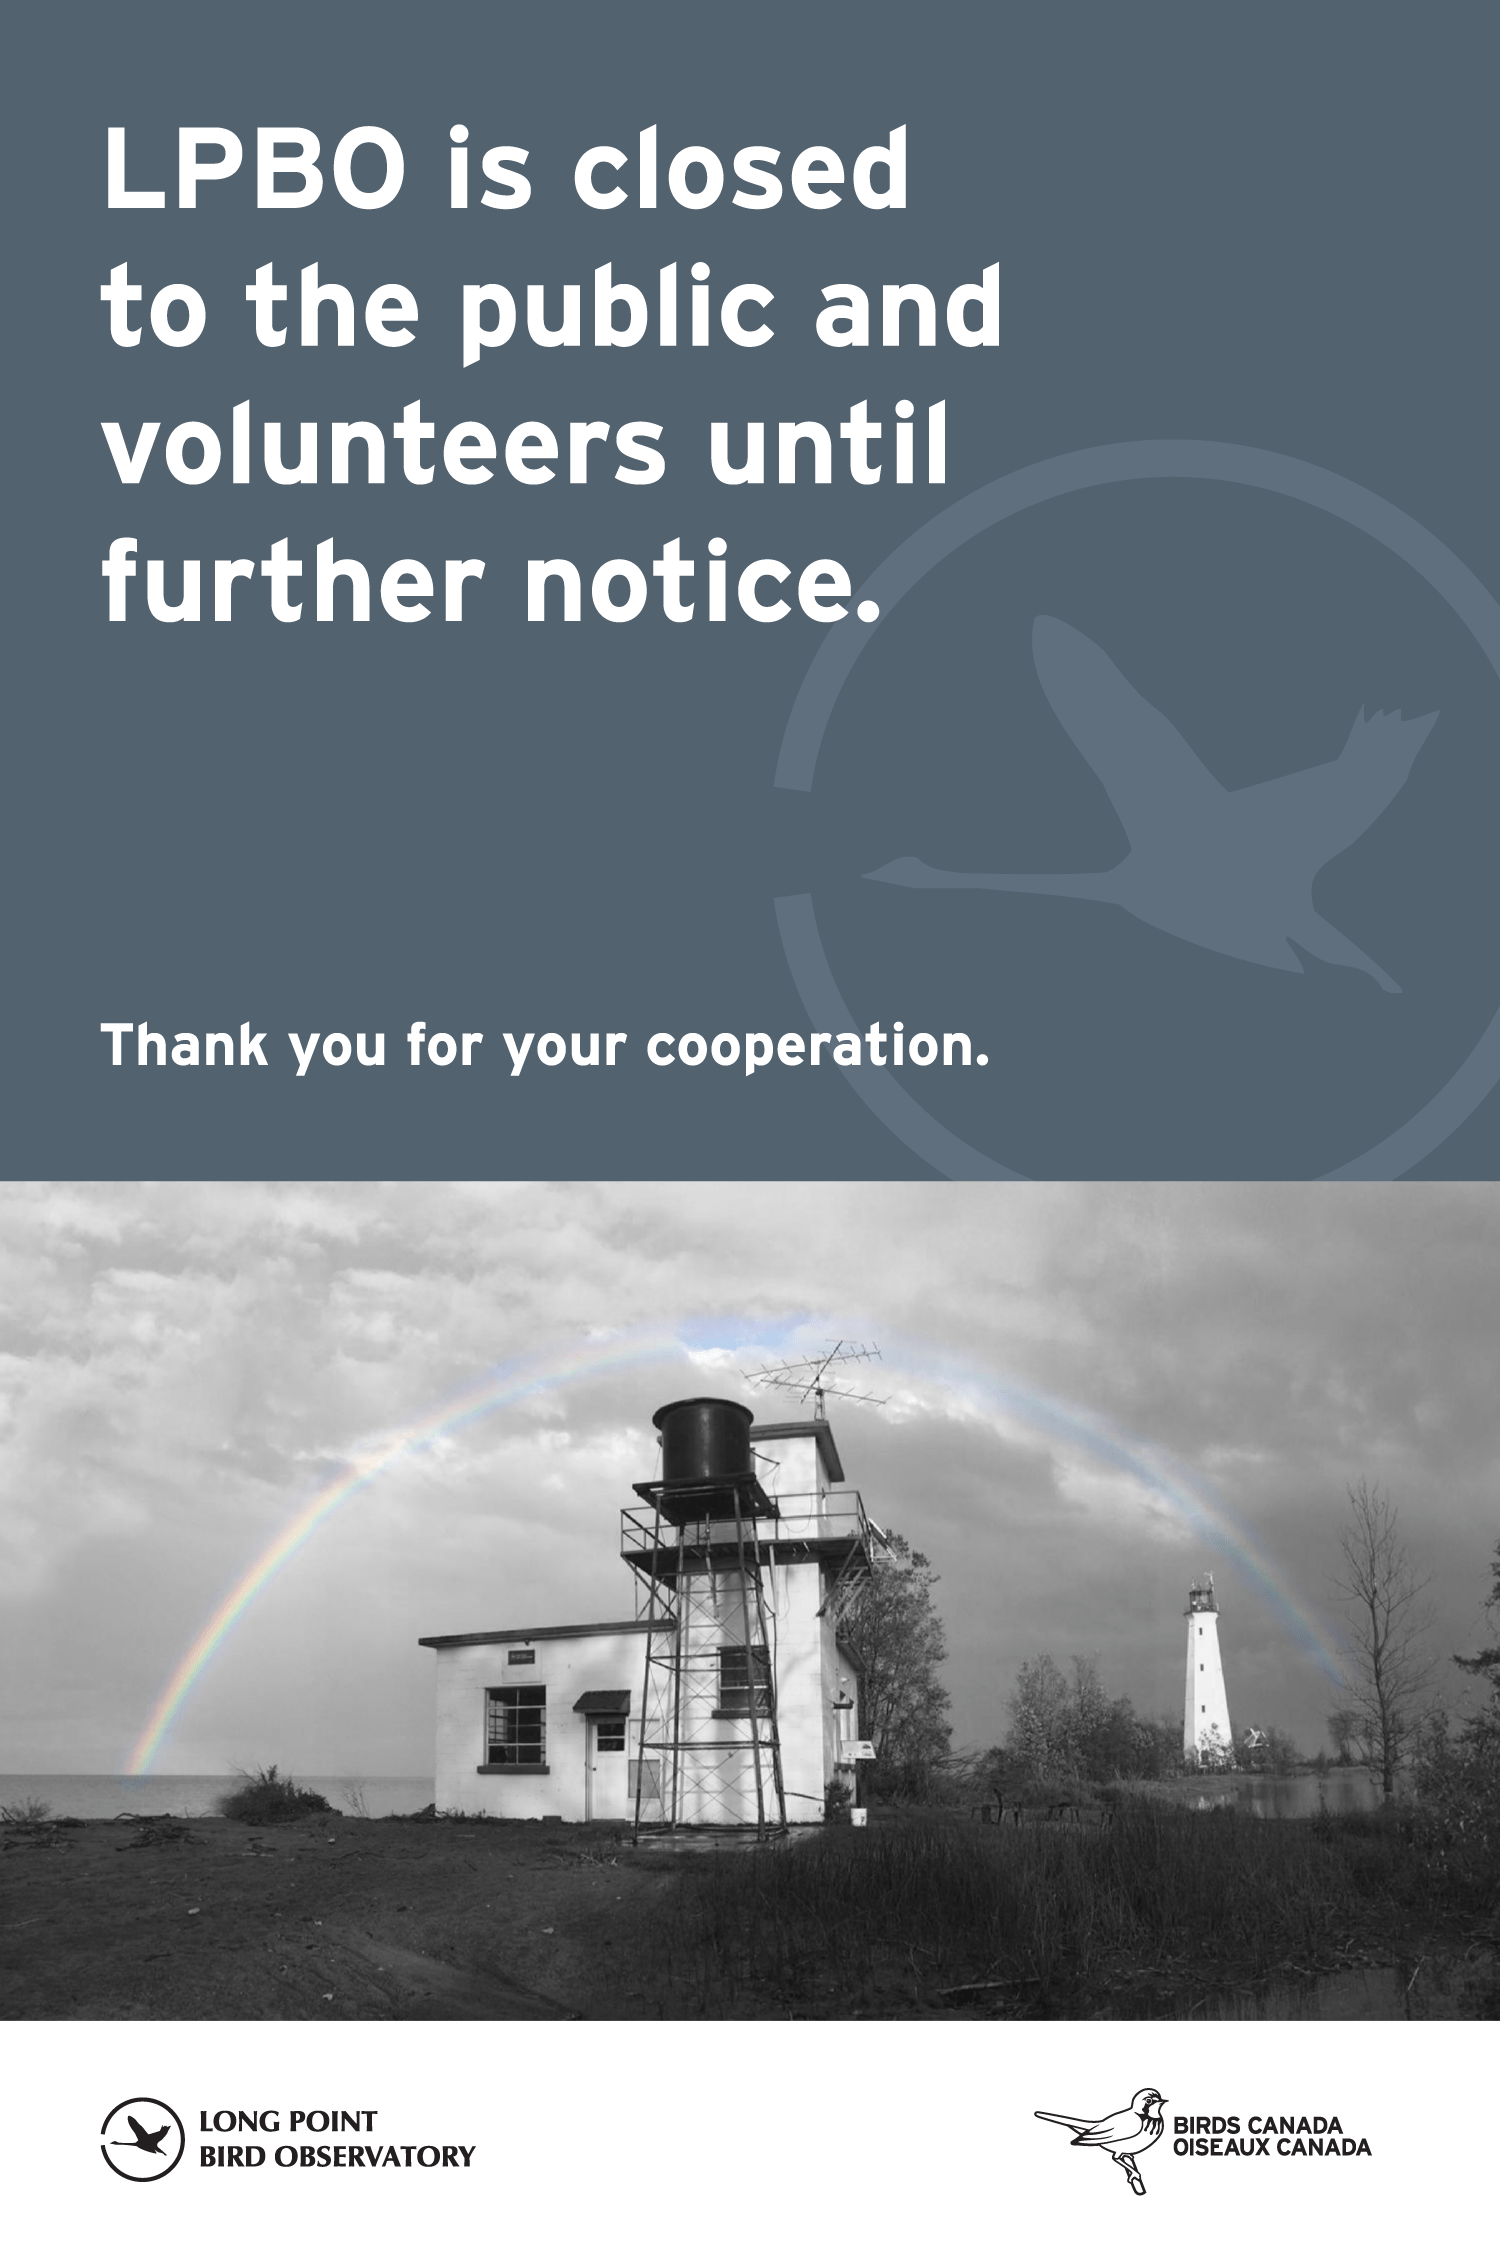 Long Point Bird Observatory is closed to the public until further notice.